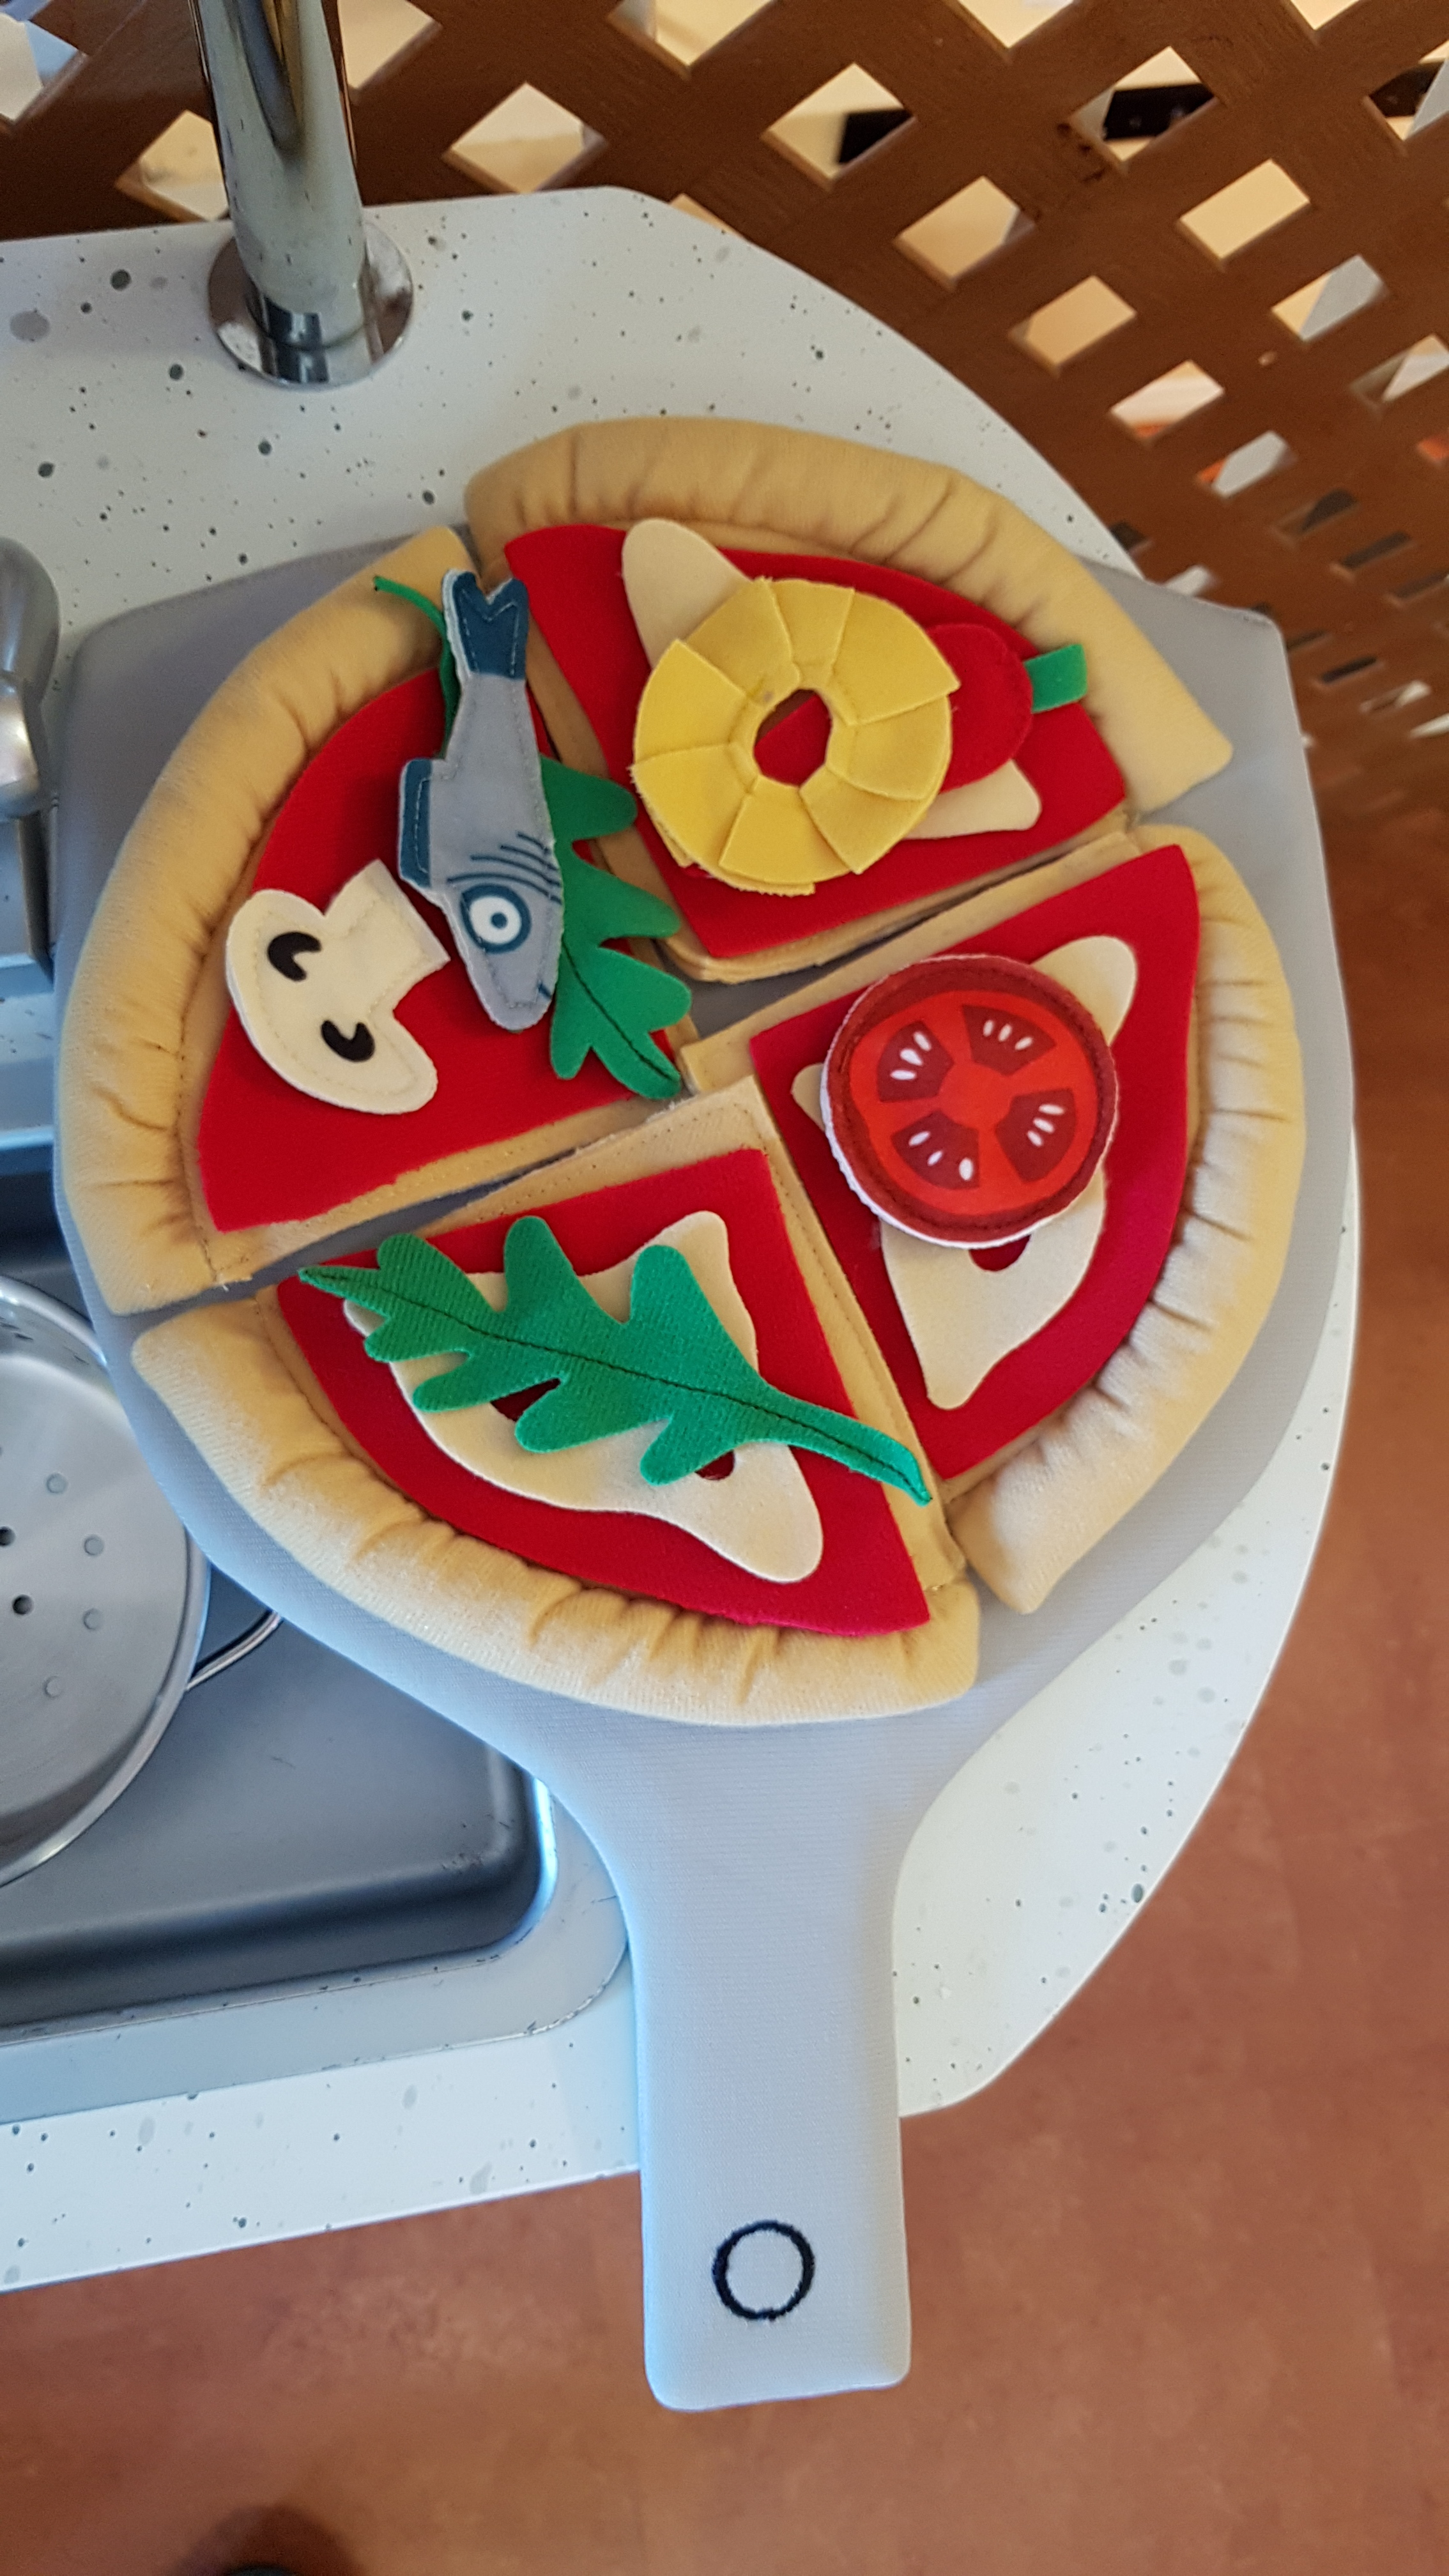 Pizza anyone? One of the adorable new additions to our play kitchen!